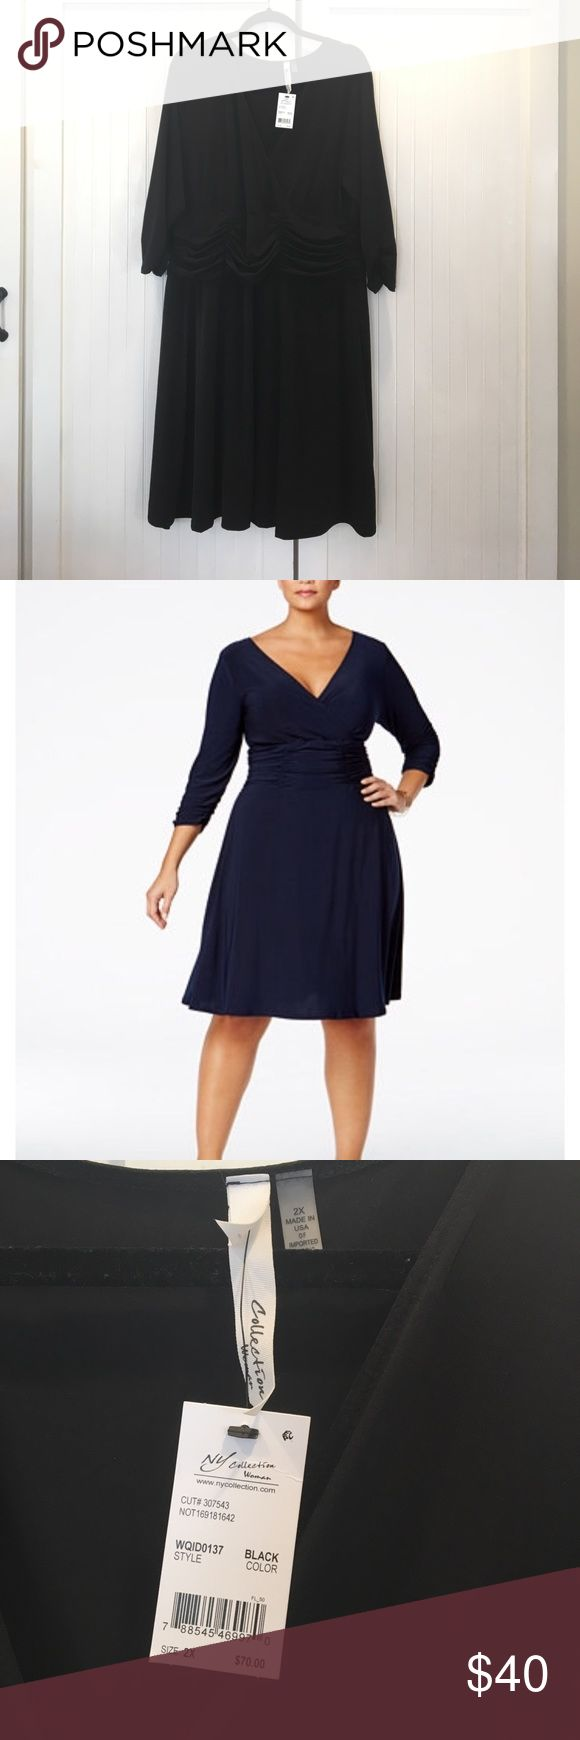 NY Collection V Neck Black Dress 2x Beautiful NY collection black dress. V Neck, ruched waist & sleeves. Very flattering. New w/ tags NY Collection Dresses